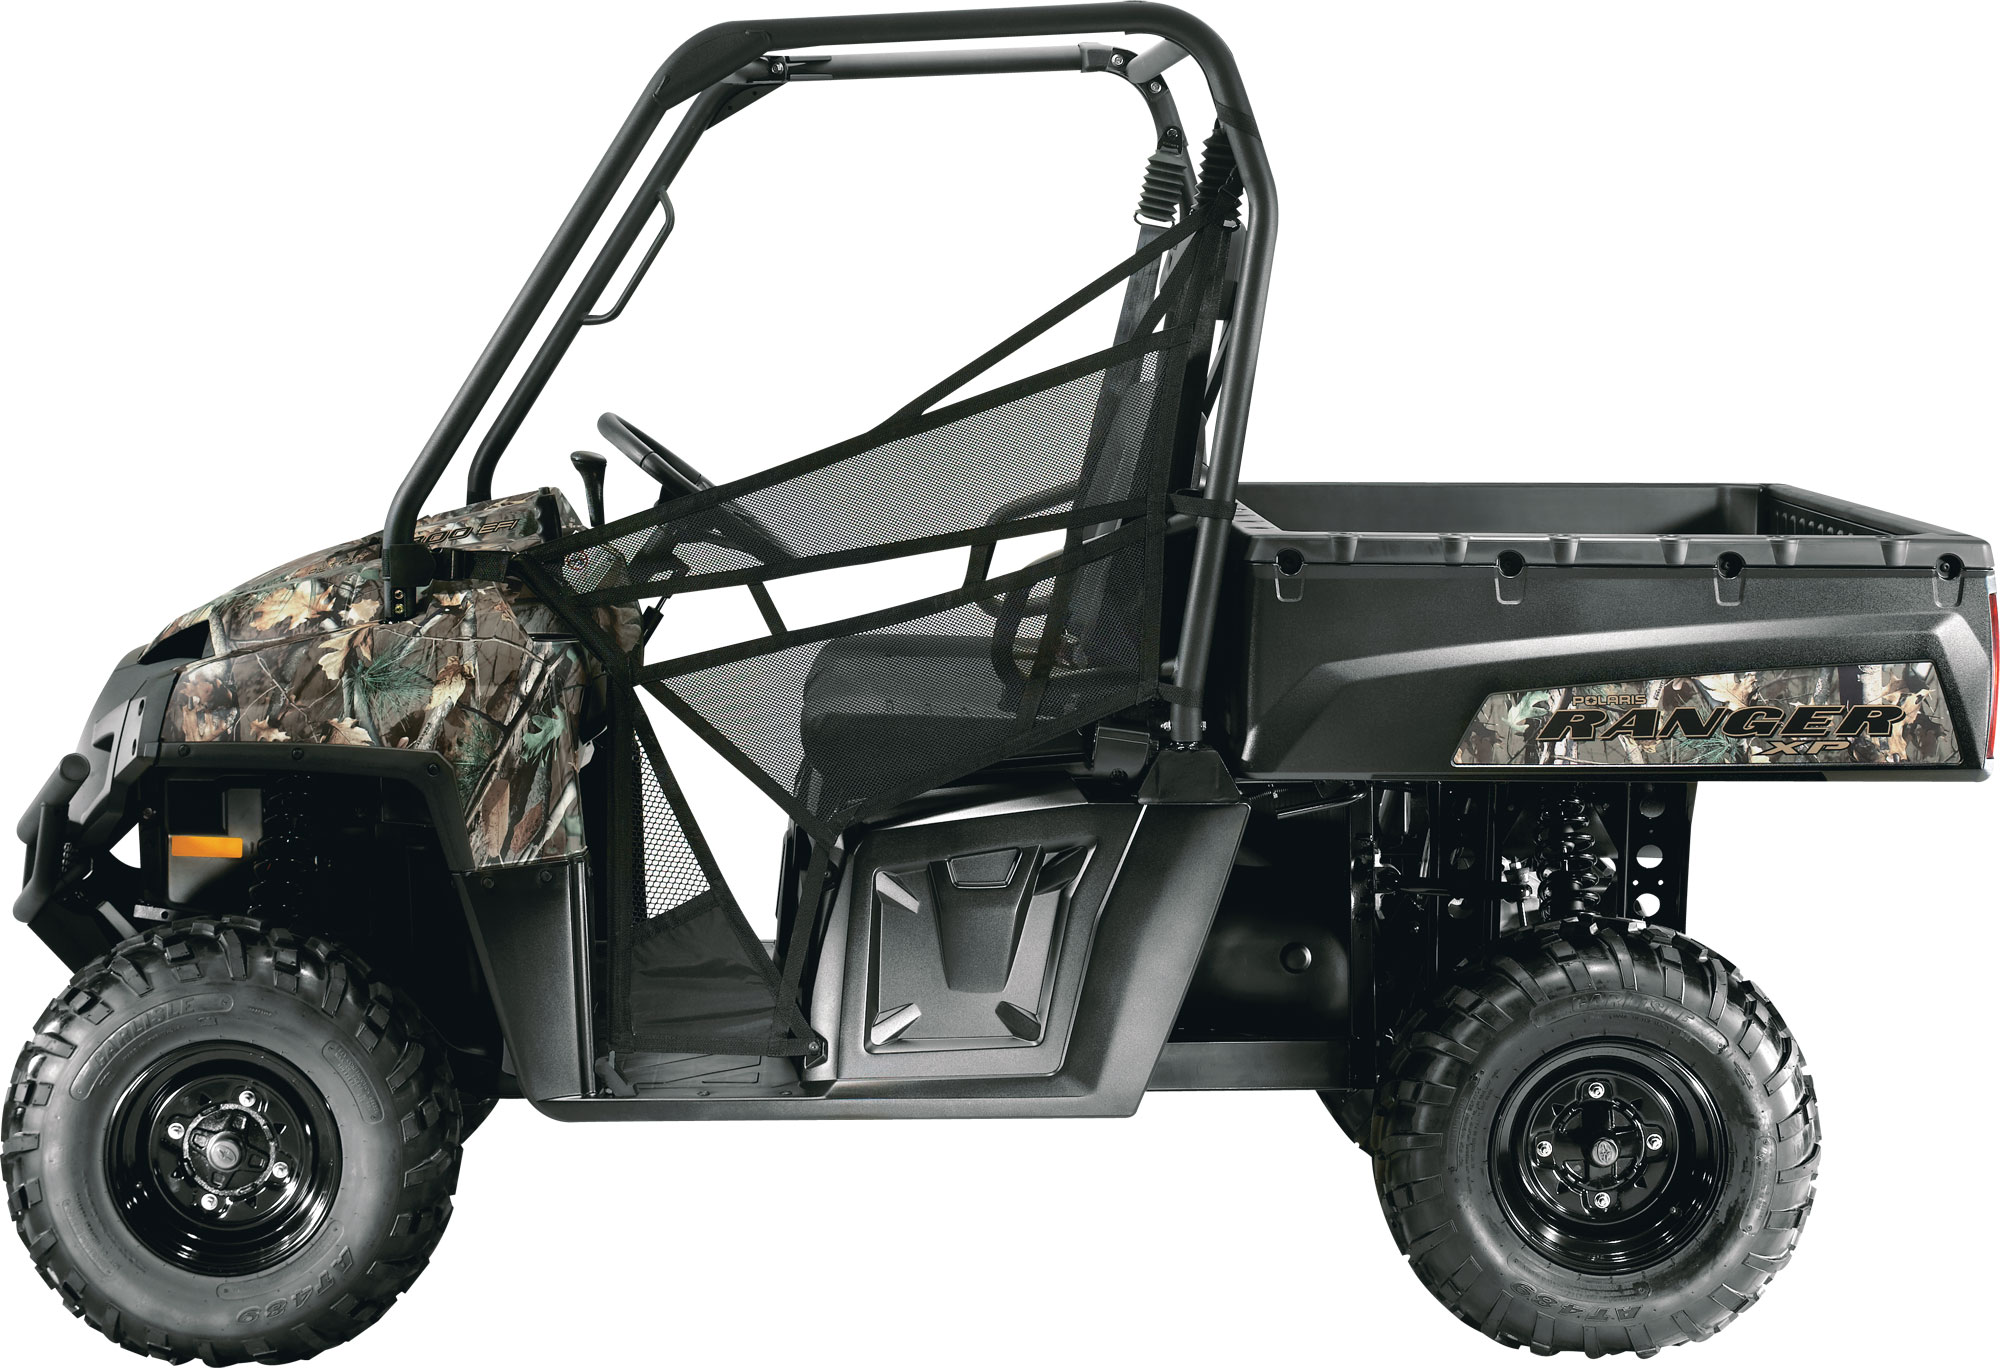 2012 Polaris Ranger XP 800 EPS Browning LE Review